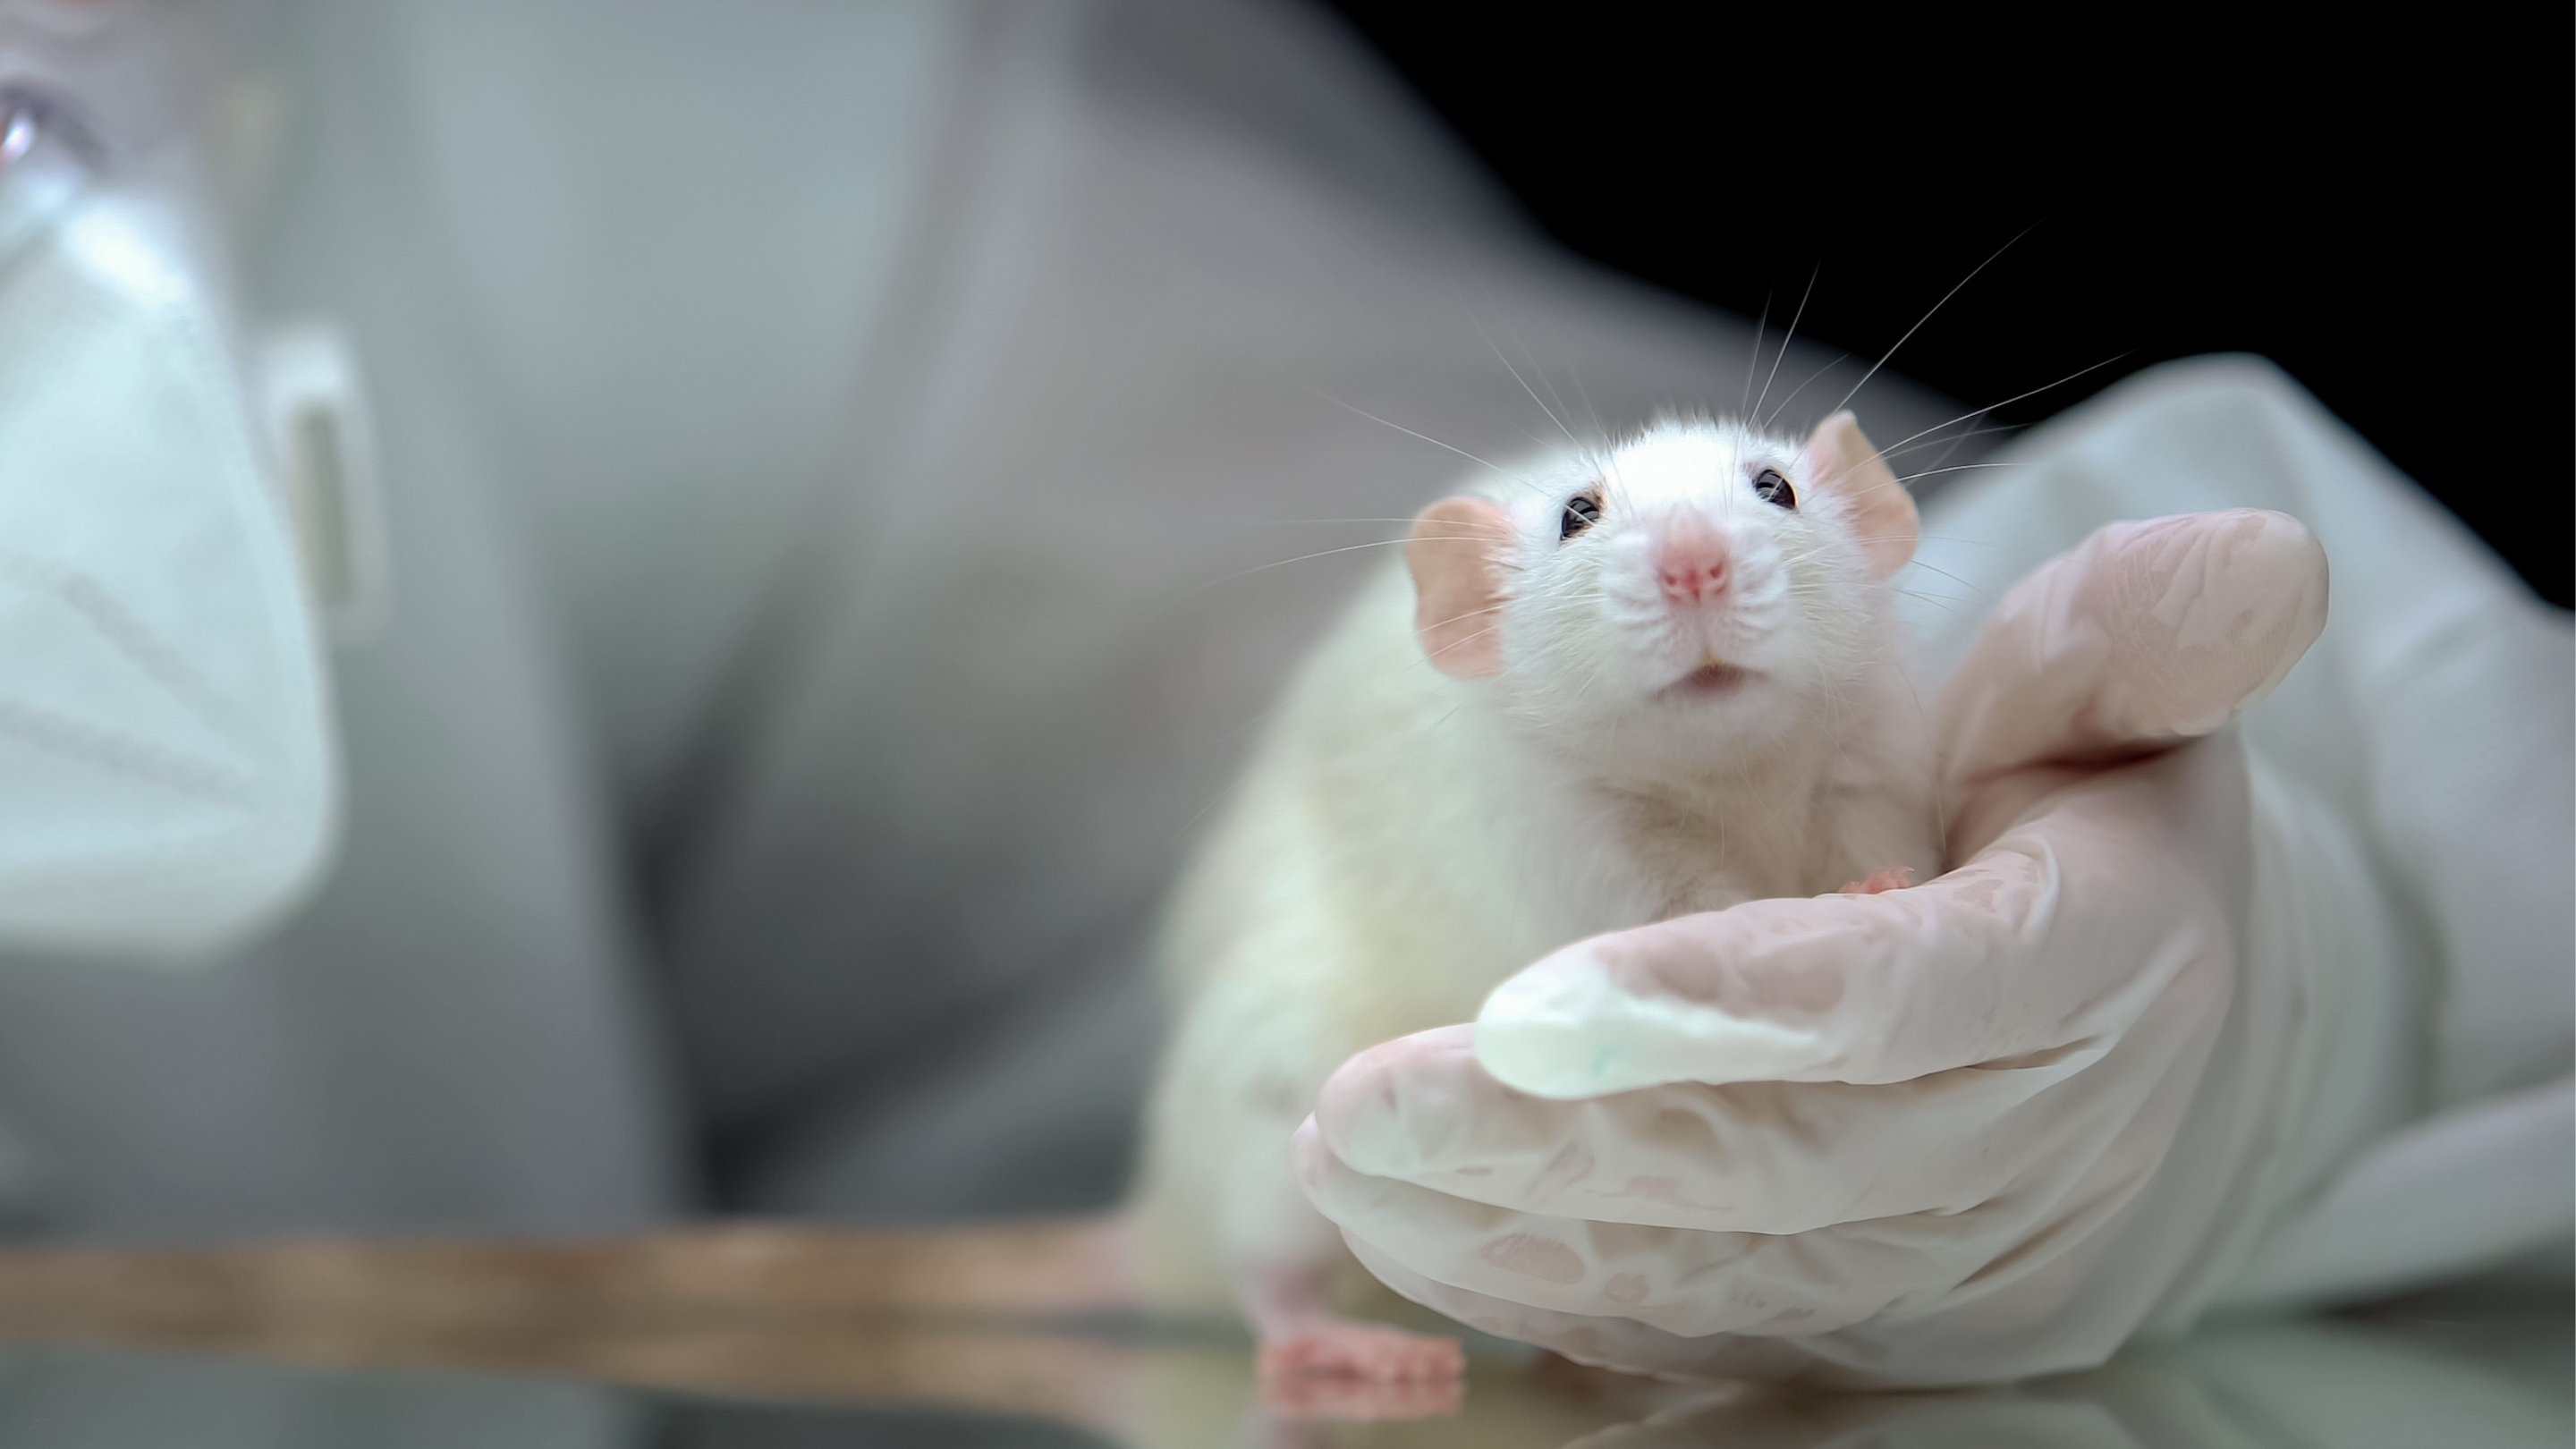 Image of a white rate being held in a gloved hand